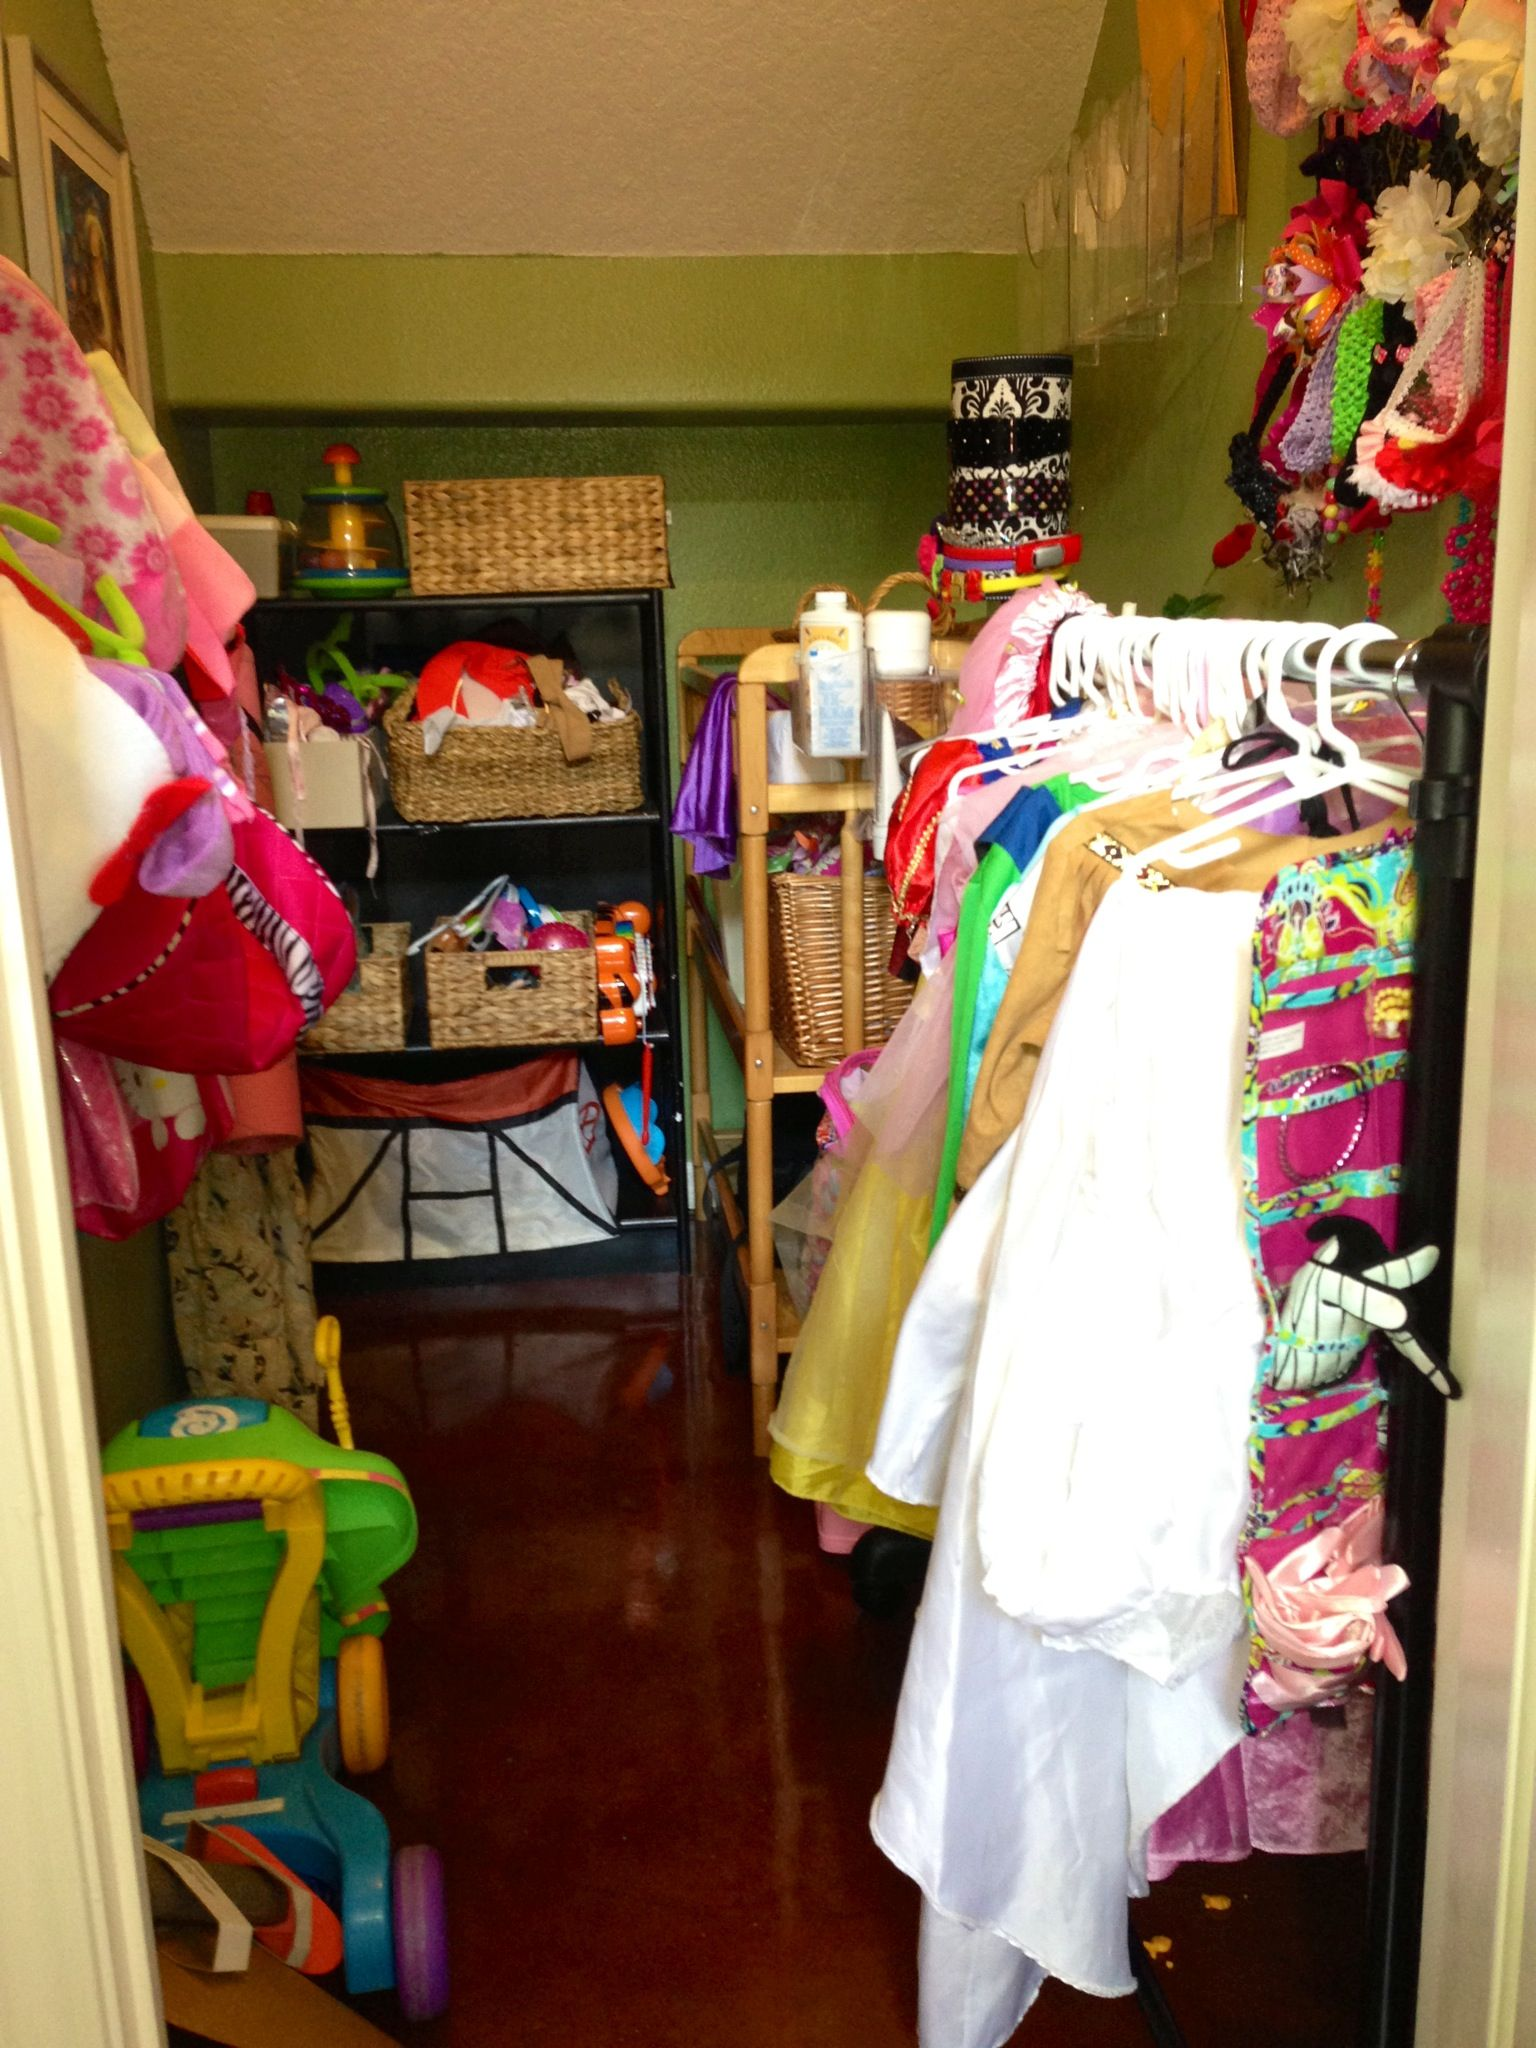 Our closet under the stairs is used to organize the dress up